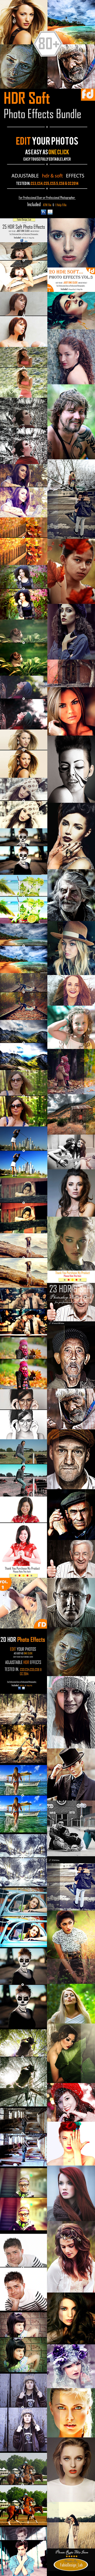 GraphicRiver 80& HDR Soft Photo Effects Bundle 11457306